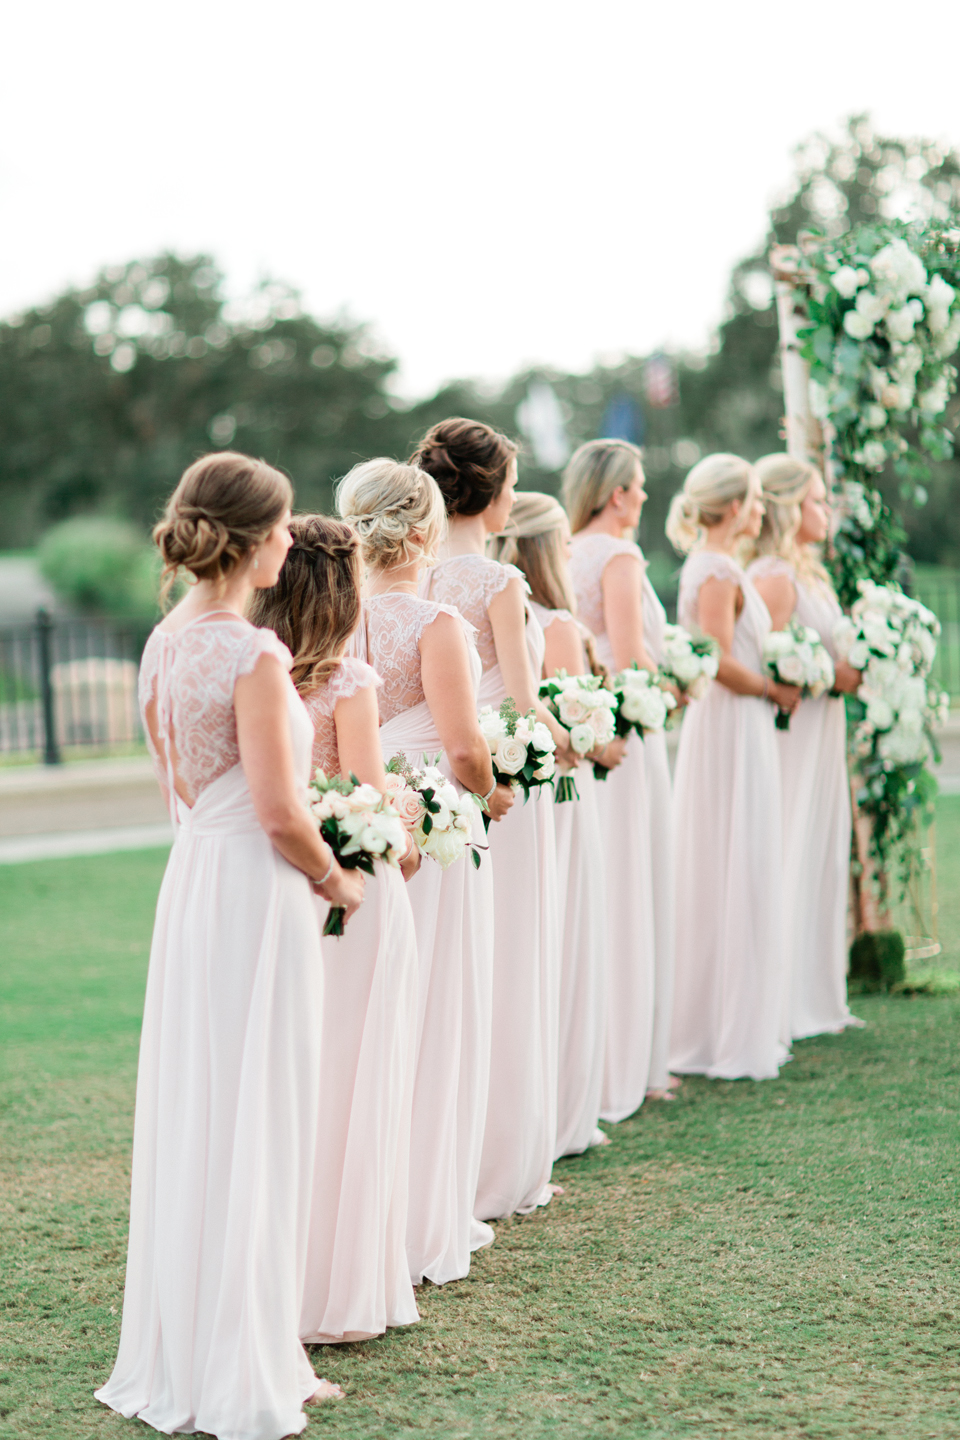 Image of bridesmaids standing up during a wedding ceremony at TPC Sawgrass in Ponte Vedra, Florida